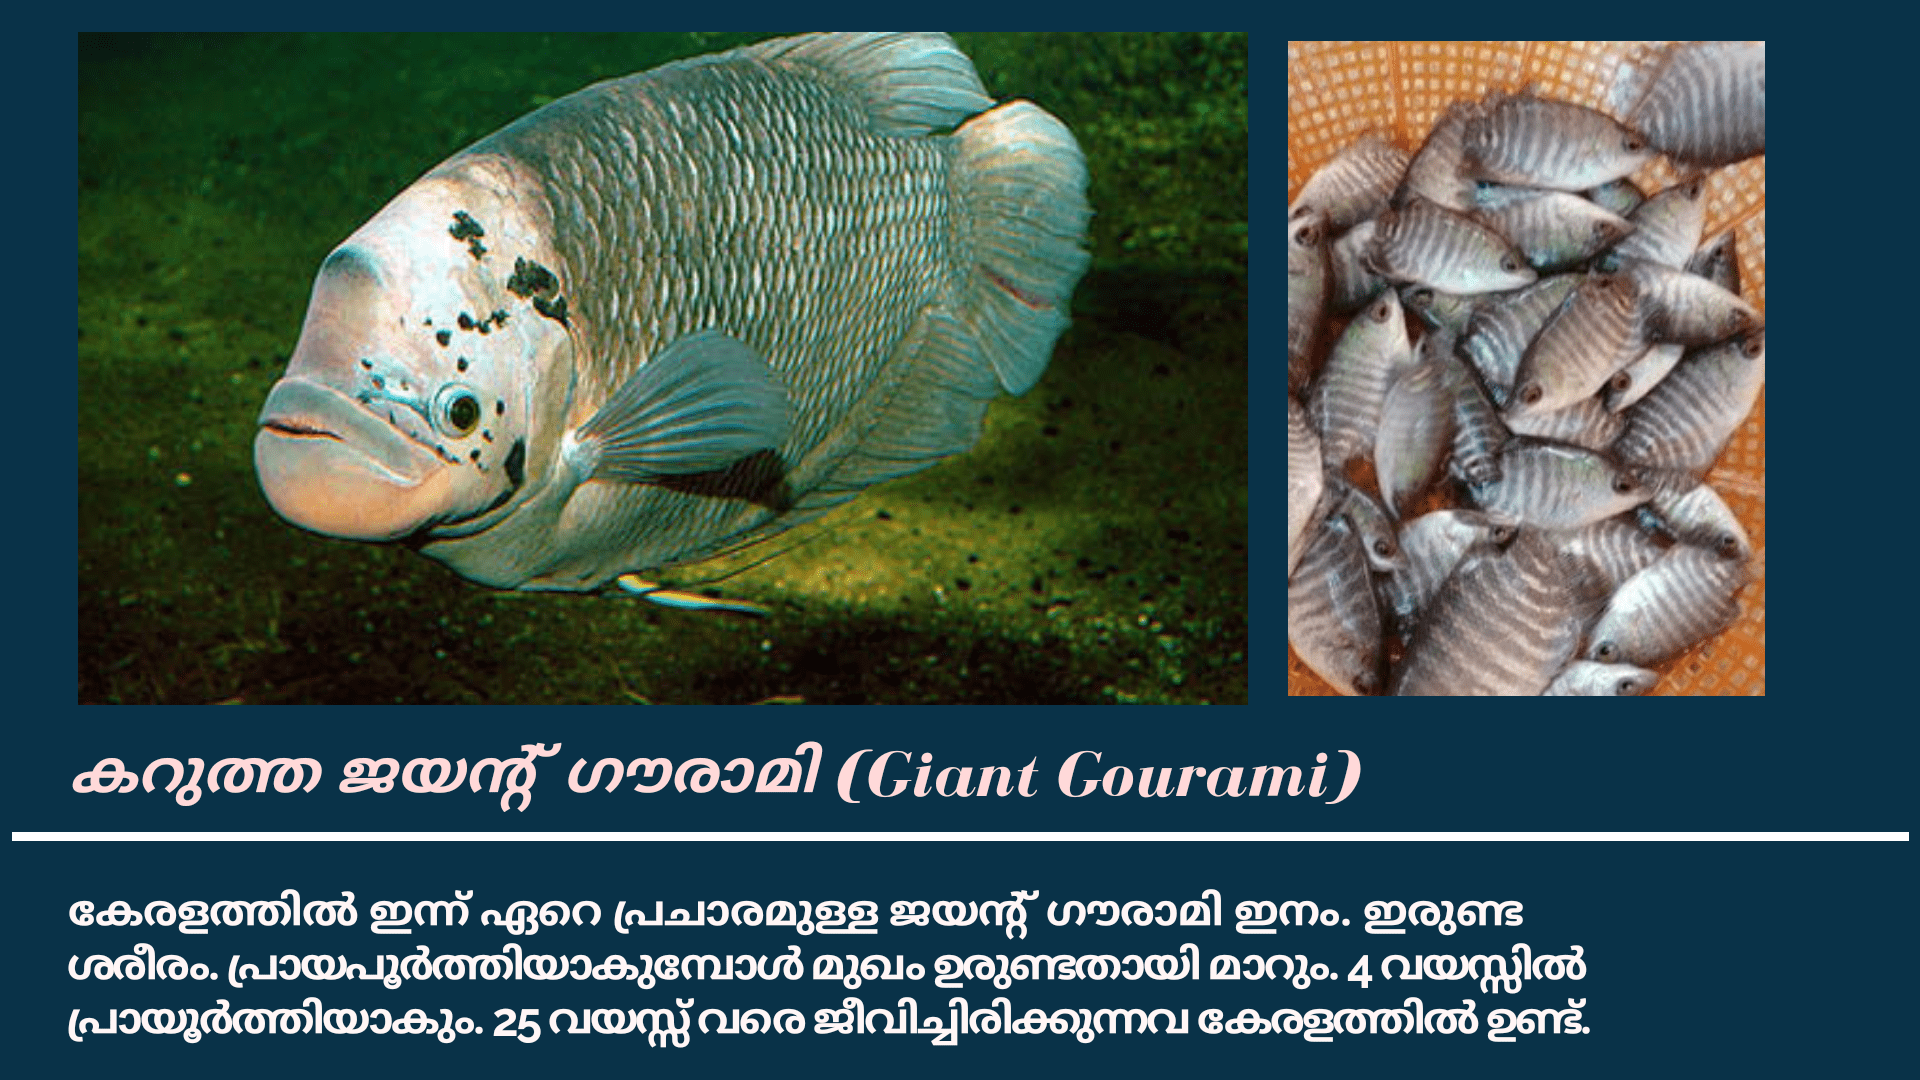 Giant Gourami Fish Farming in Kerala, Malayalam 2020